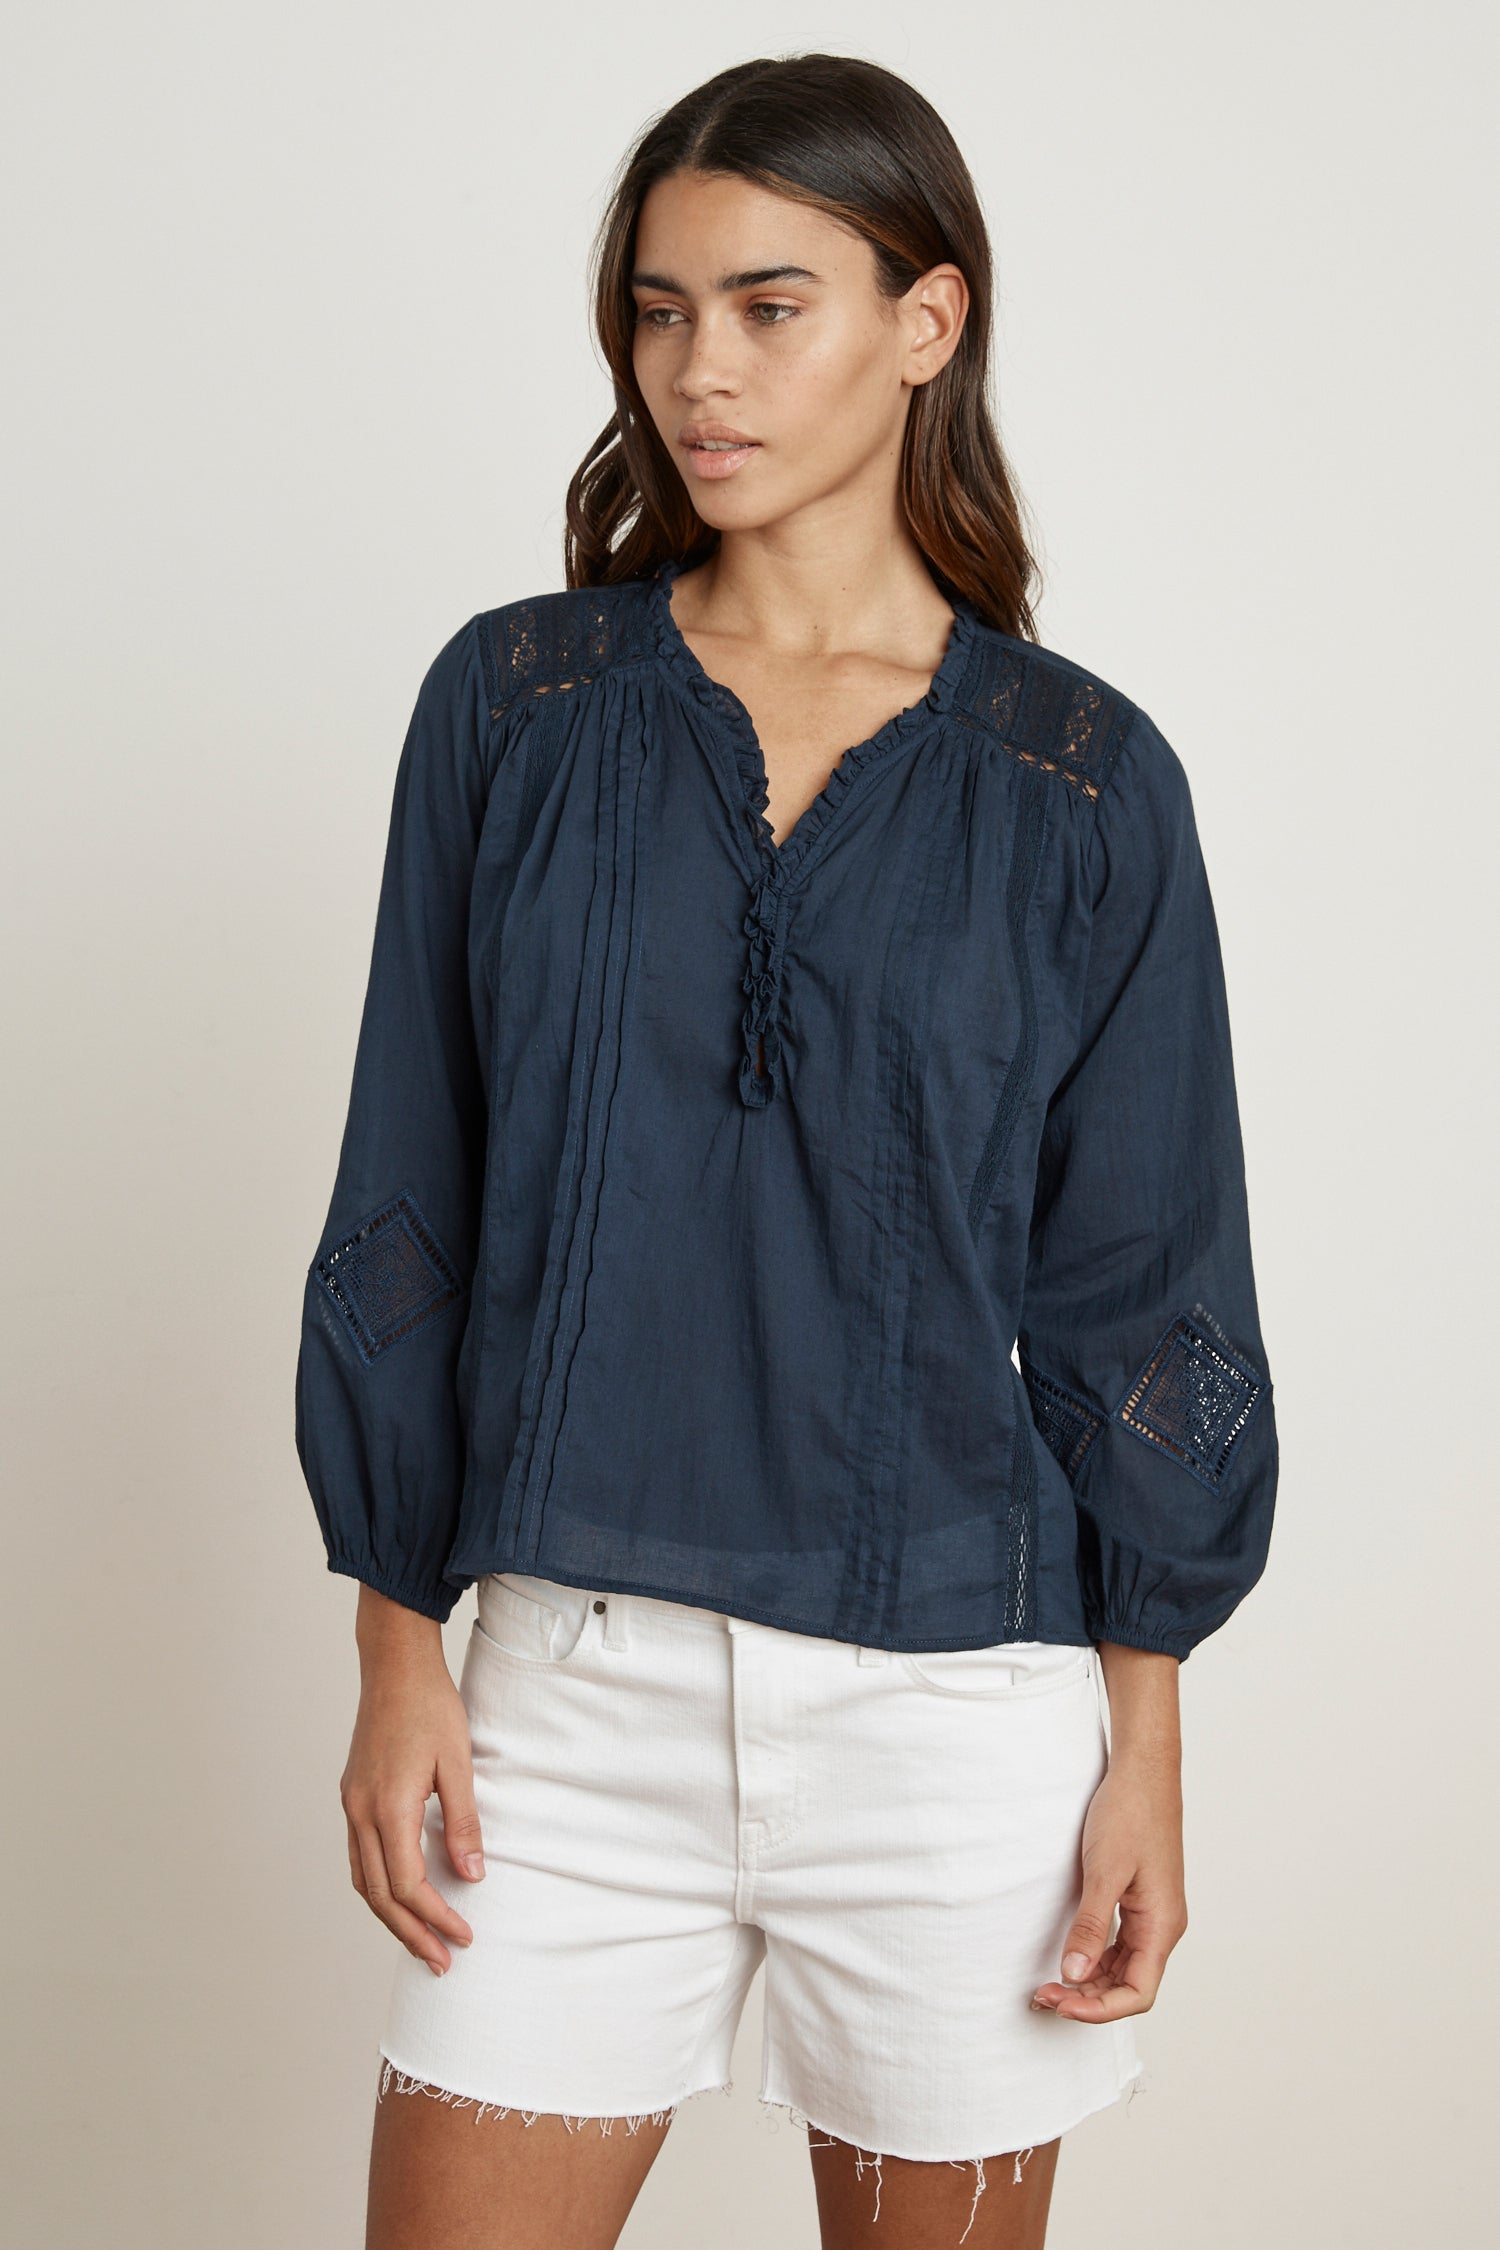 HOPE COTTON LACE BLOUSE IN NAVY